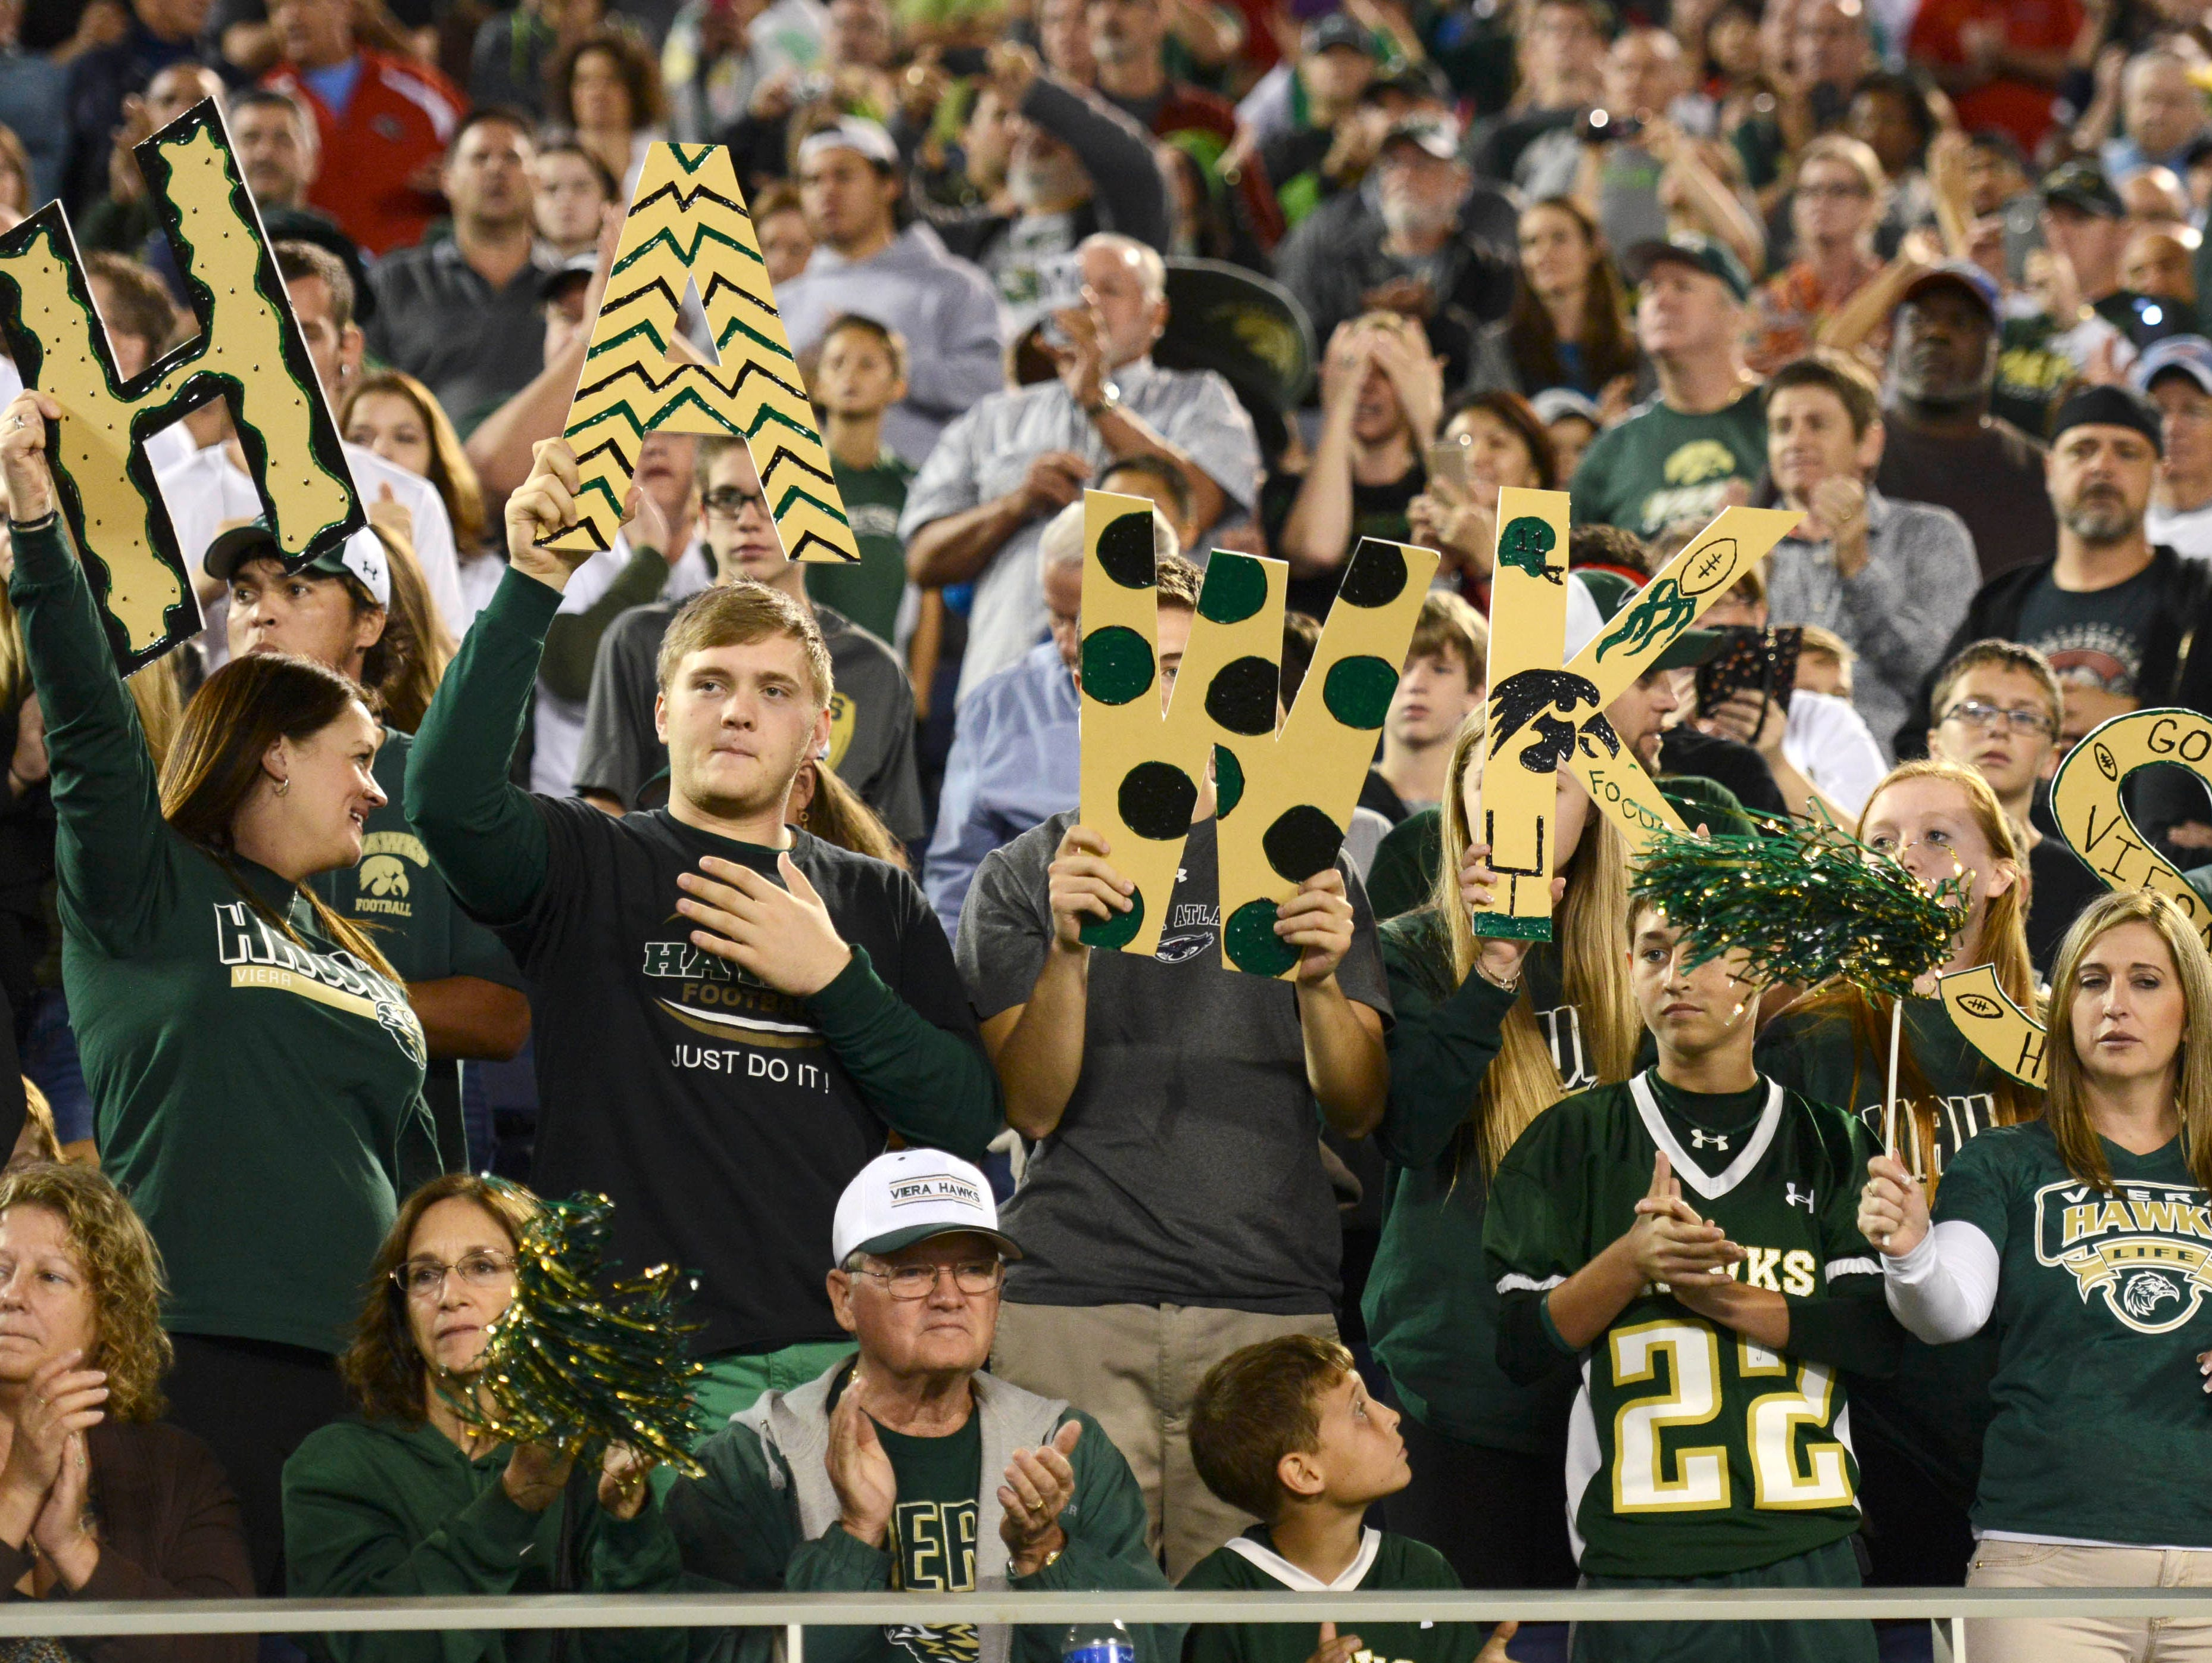 Fans cheer for the Hawks during Friday's game in the Orlando Citrus Bowl.